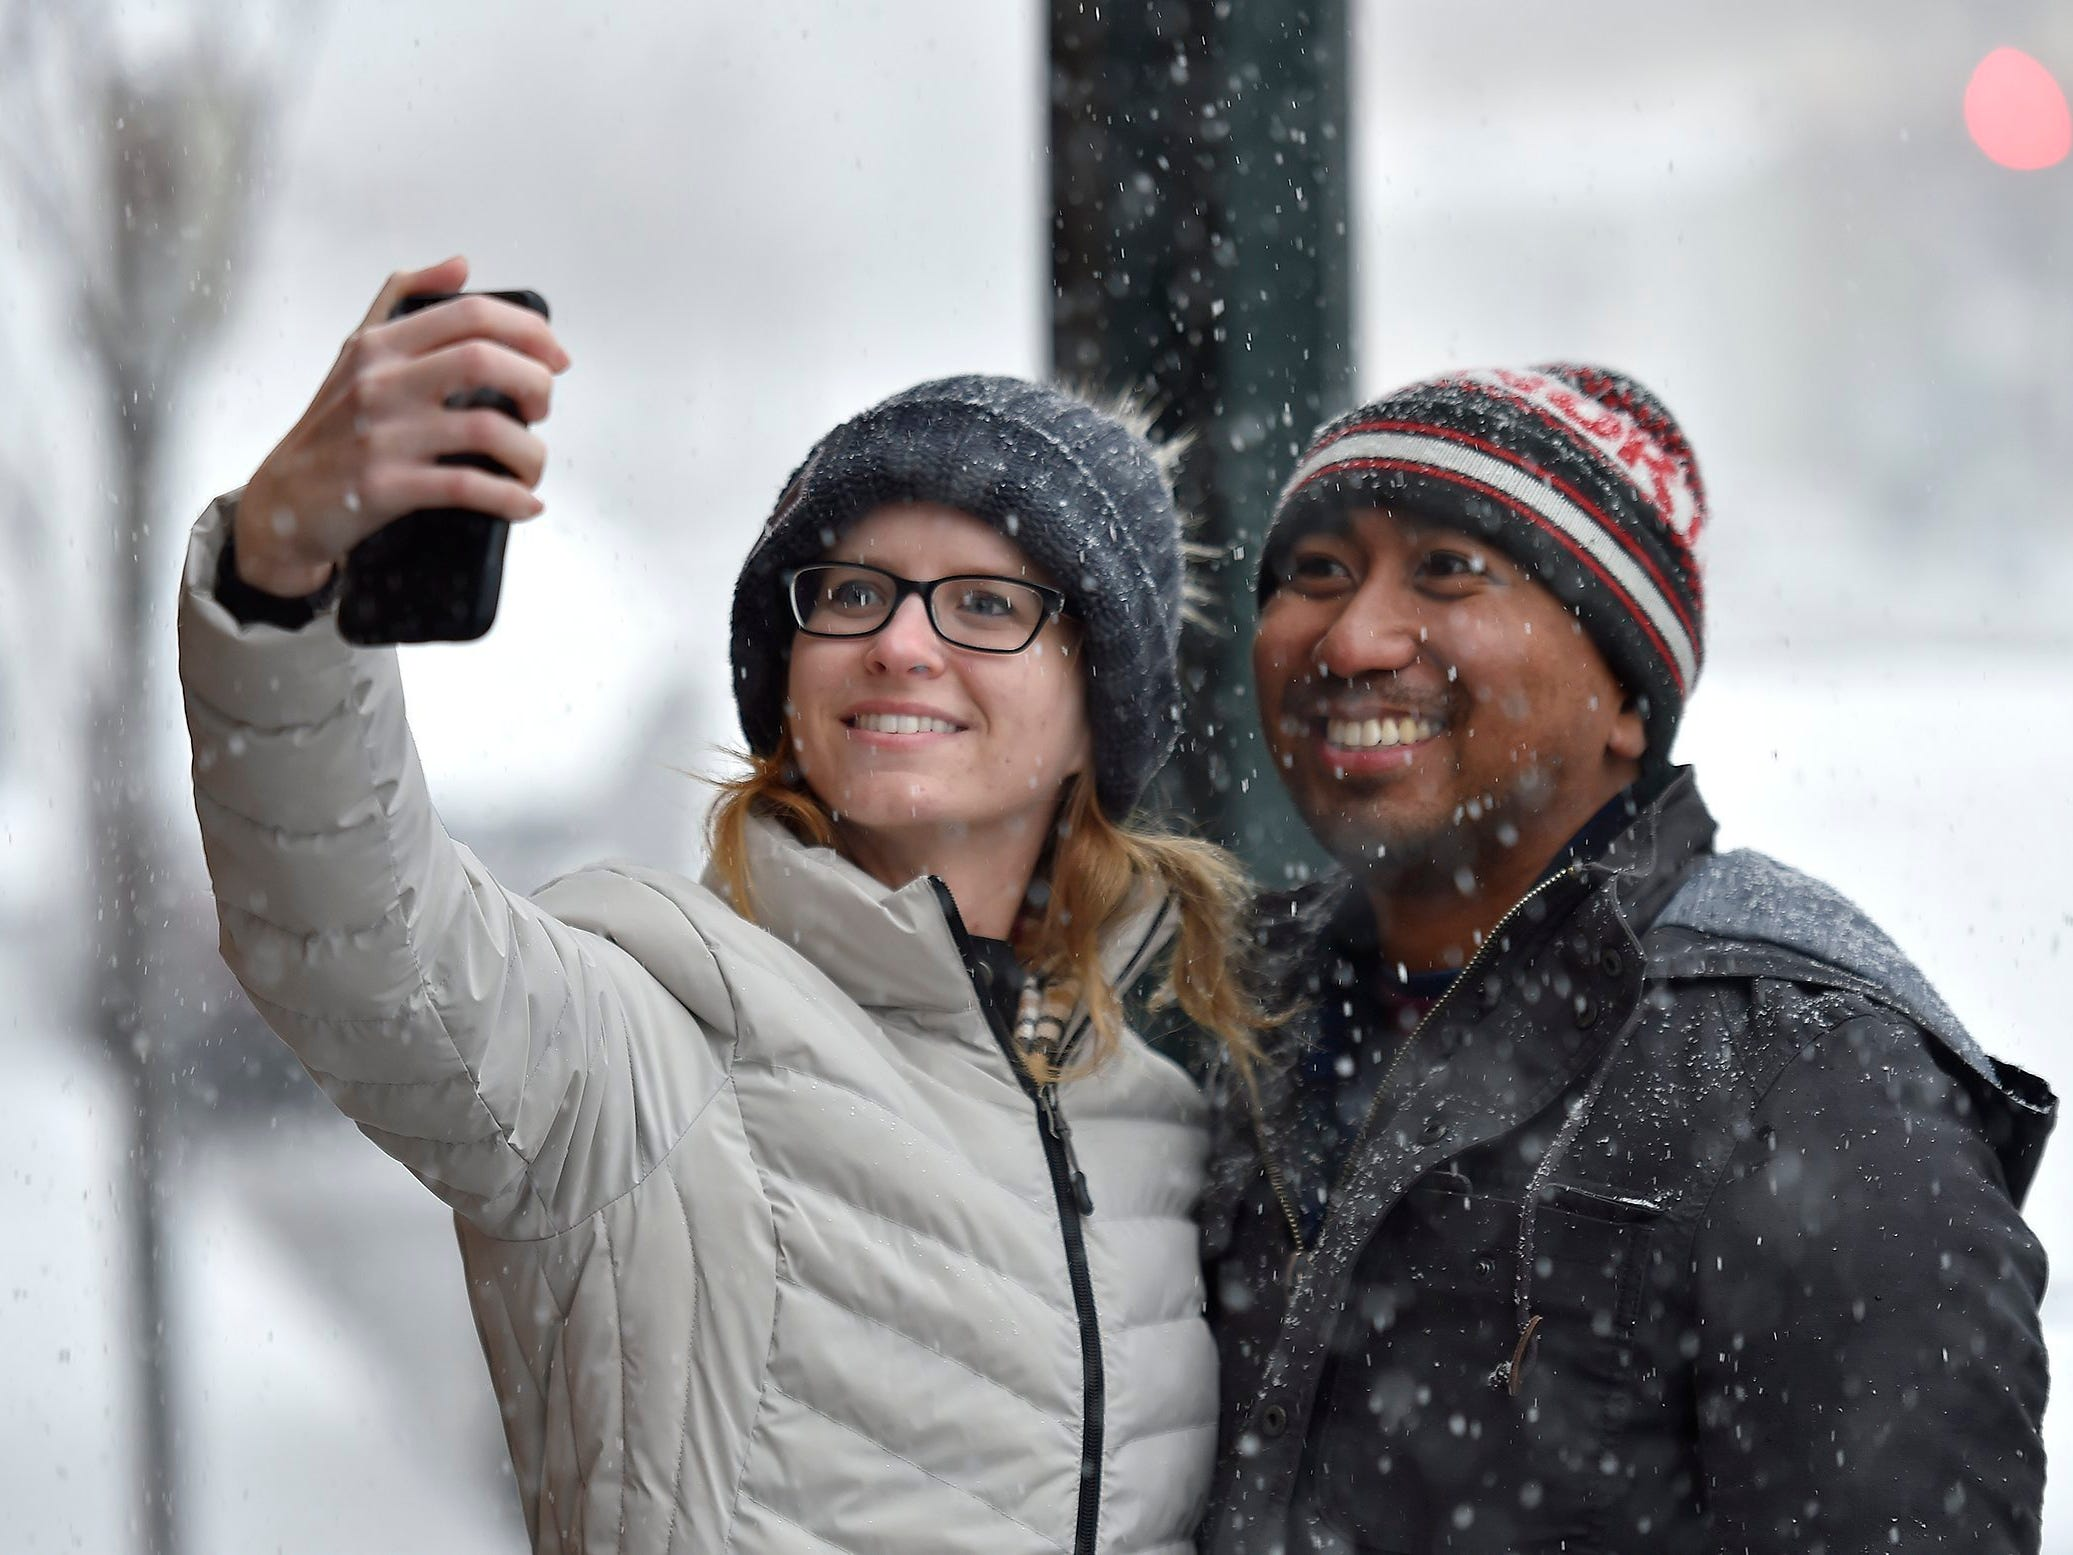 It was only the third time Kristin Brooker has seen snow, so a selfie was in order on Nov. 25, 2018, with friend Dominic Francia, who grew up in Kansas City. The pair stopped on their walk around the Country Club Plaza just as the heavy snow began to fall. Both now live in Los Angeles.